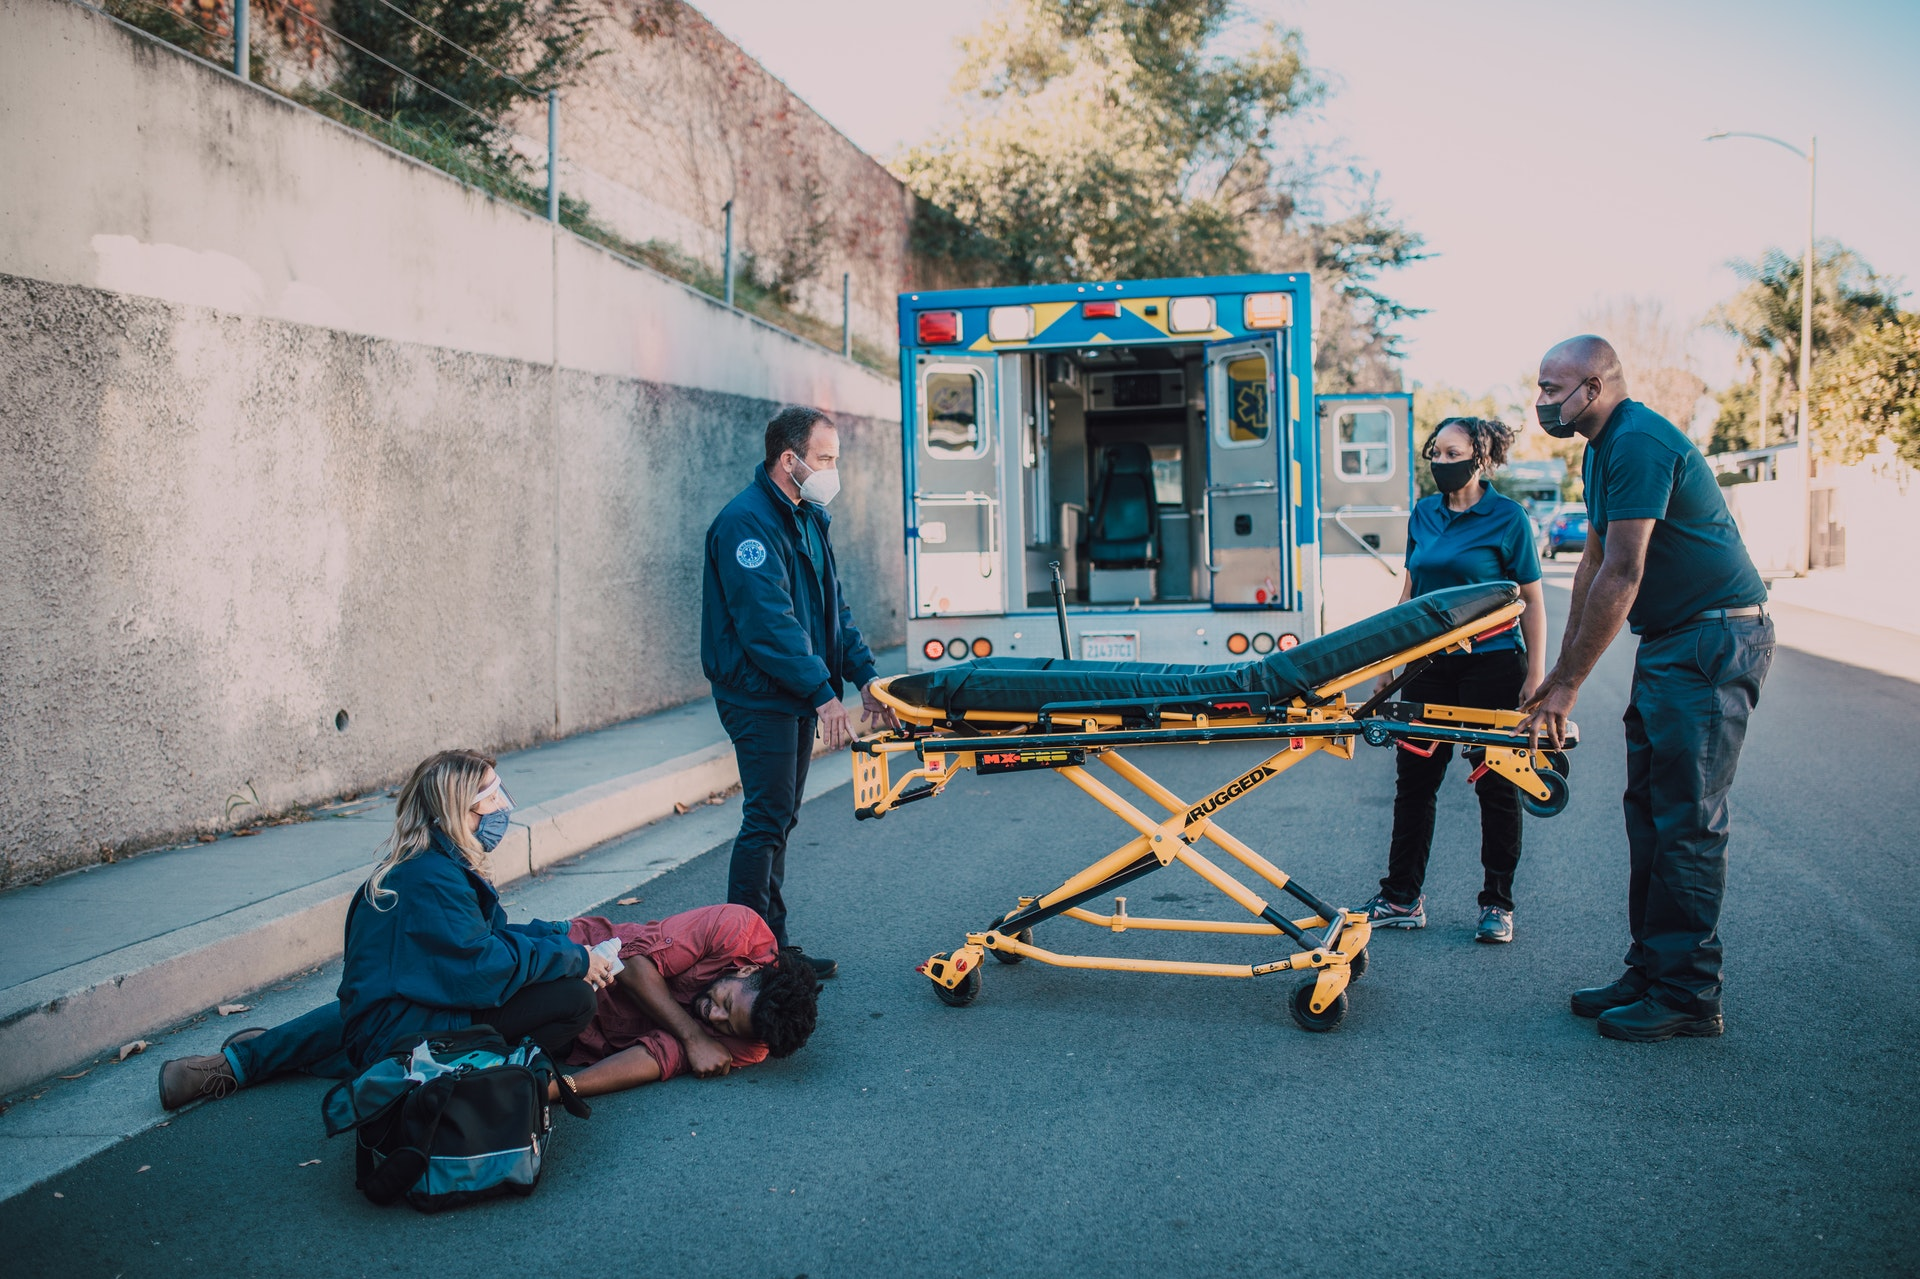 Injured man being tended to by paramedics